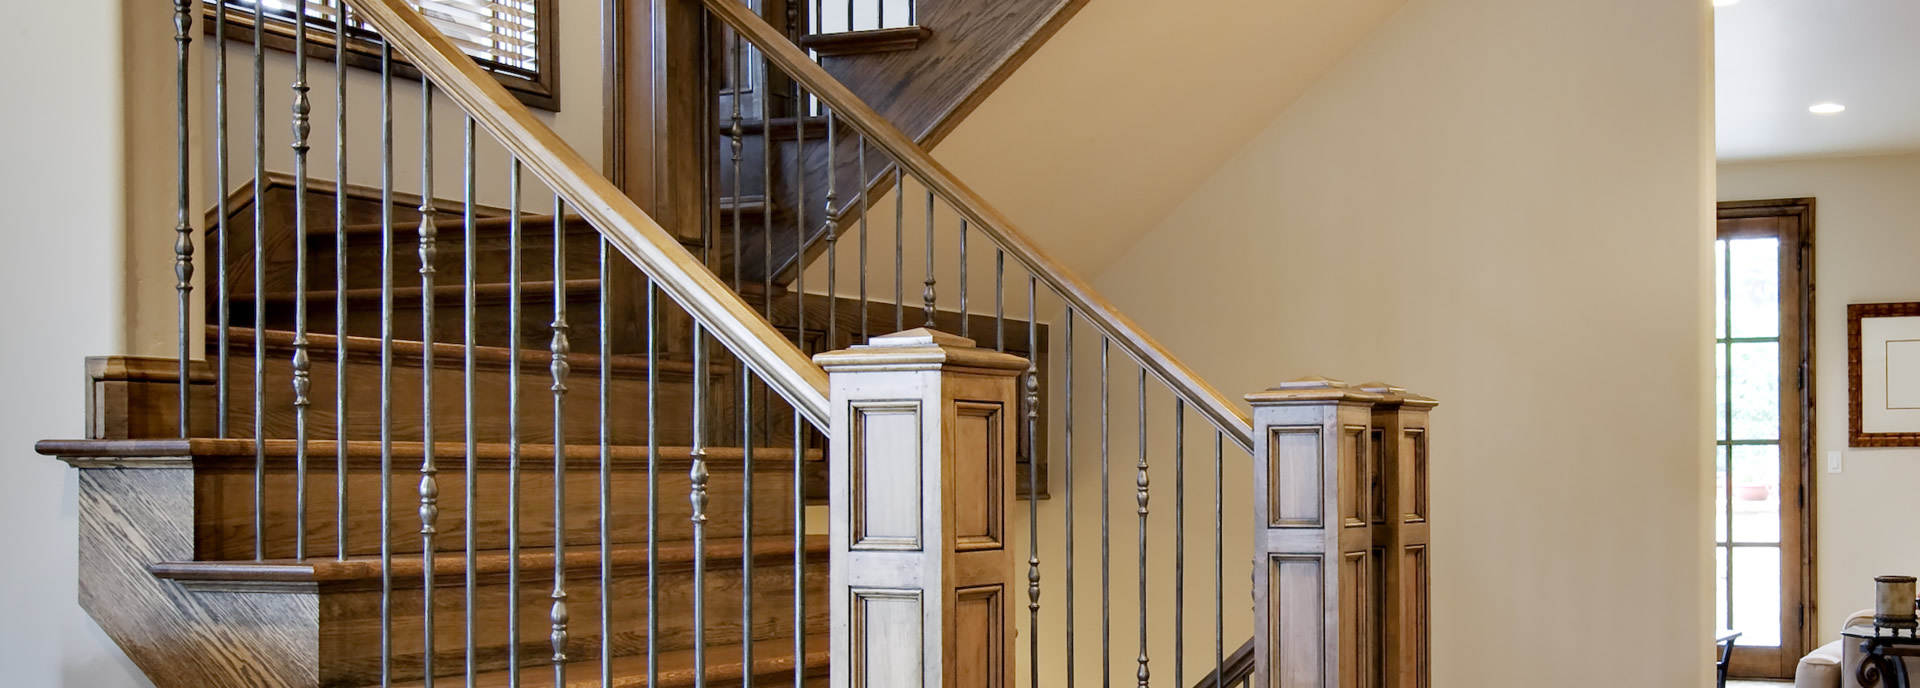 Why You Should Consider Tuscan Custom Stairs and Wrought Iron Railings Design Alpharetta, GA